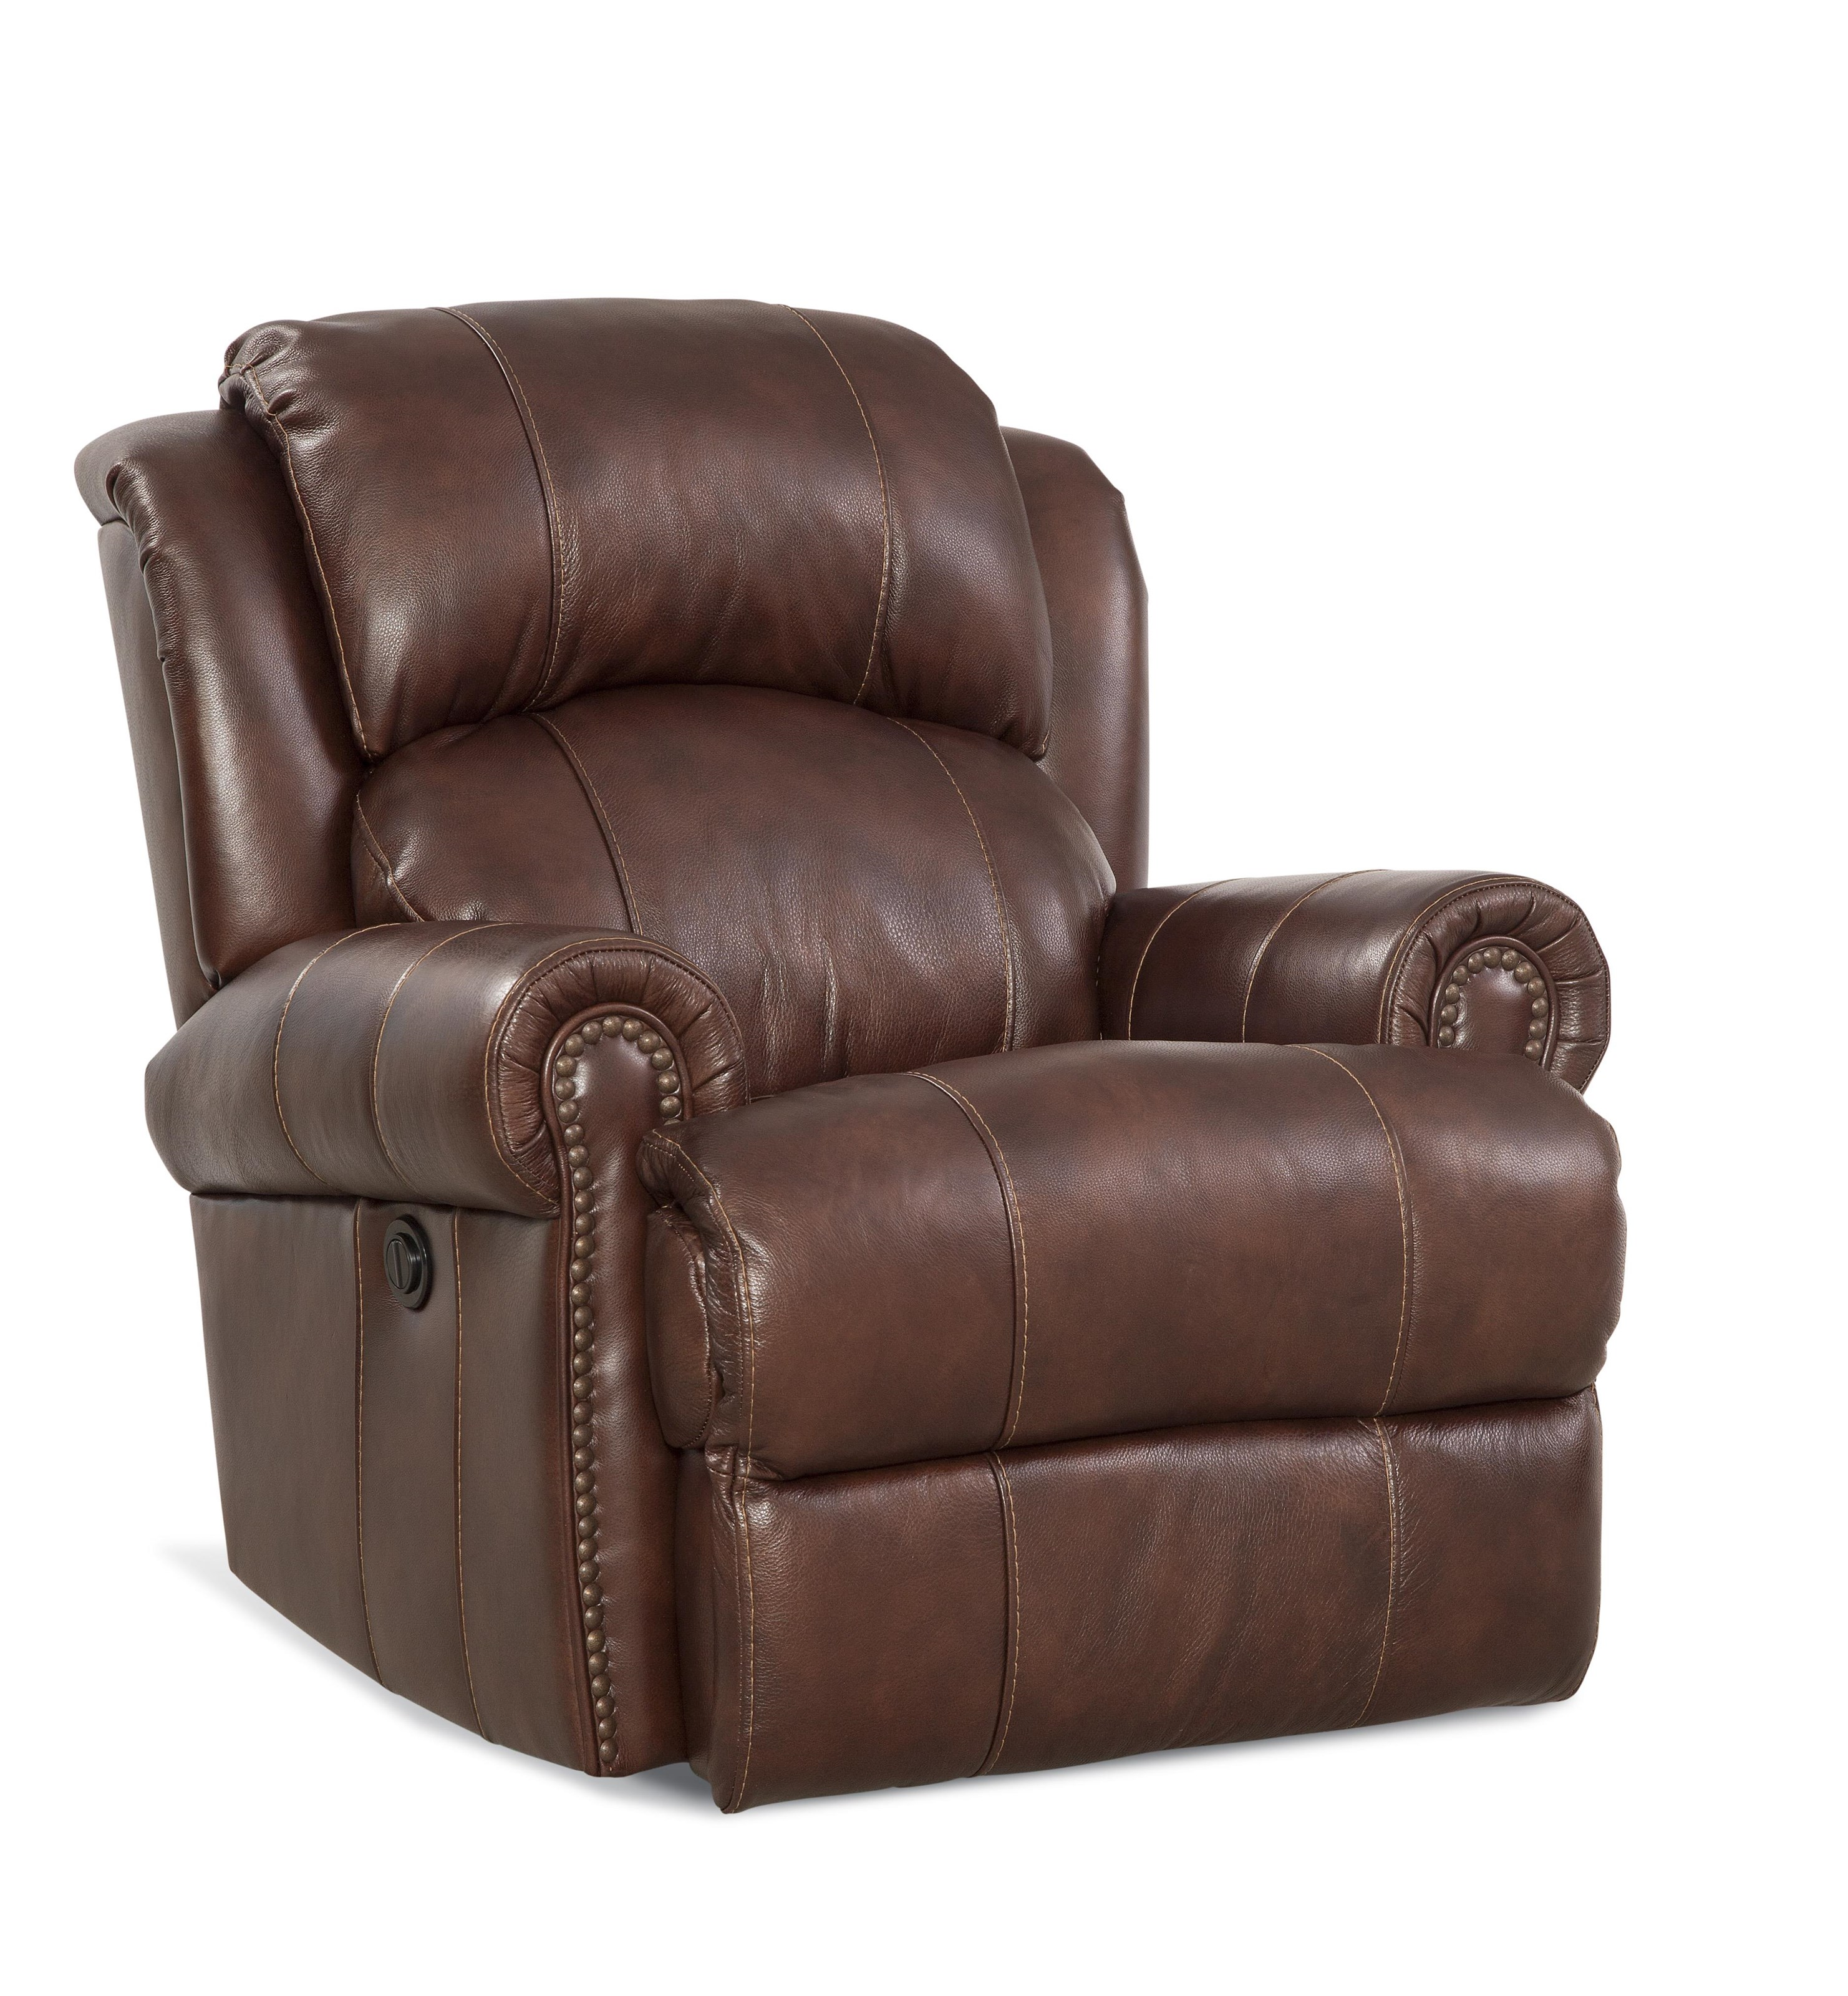 HomeStretch Jefferson Leather Rocker Recliner - Item Number: 164-91-21